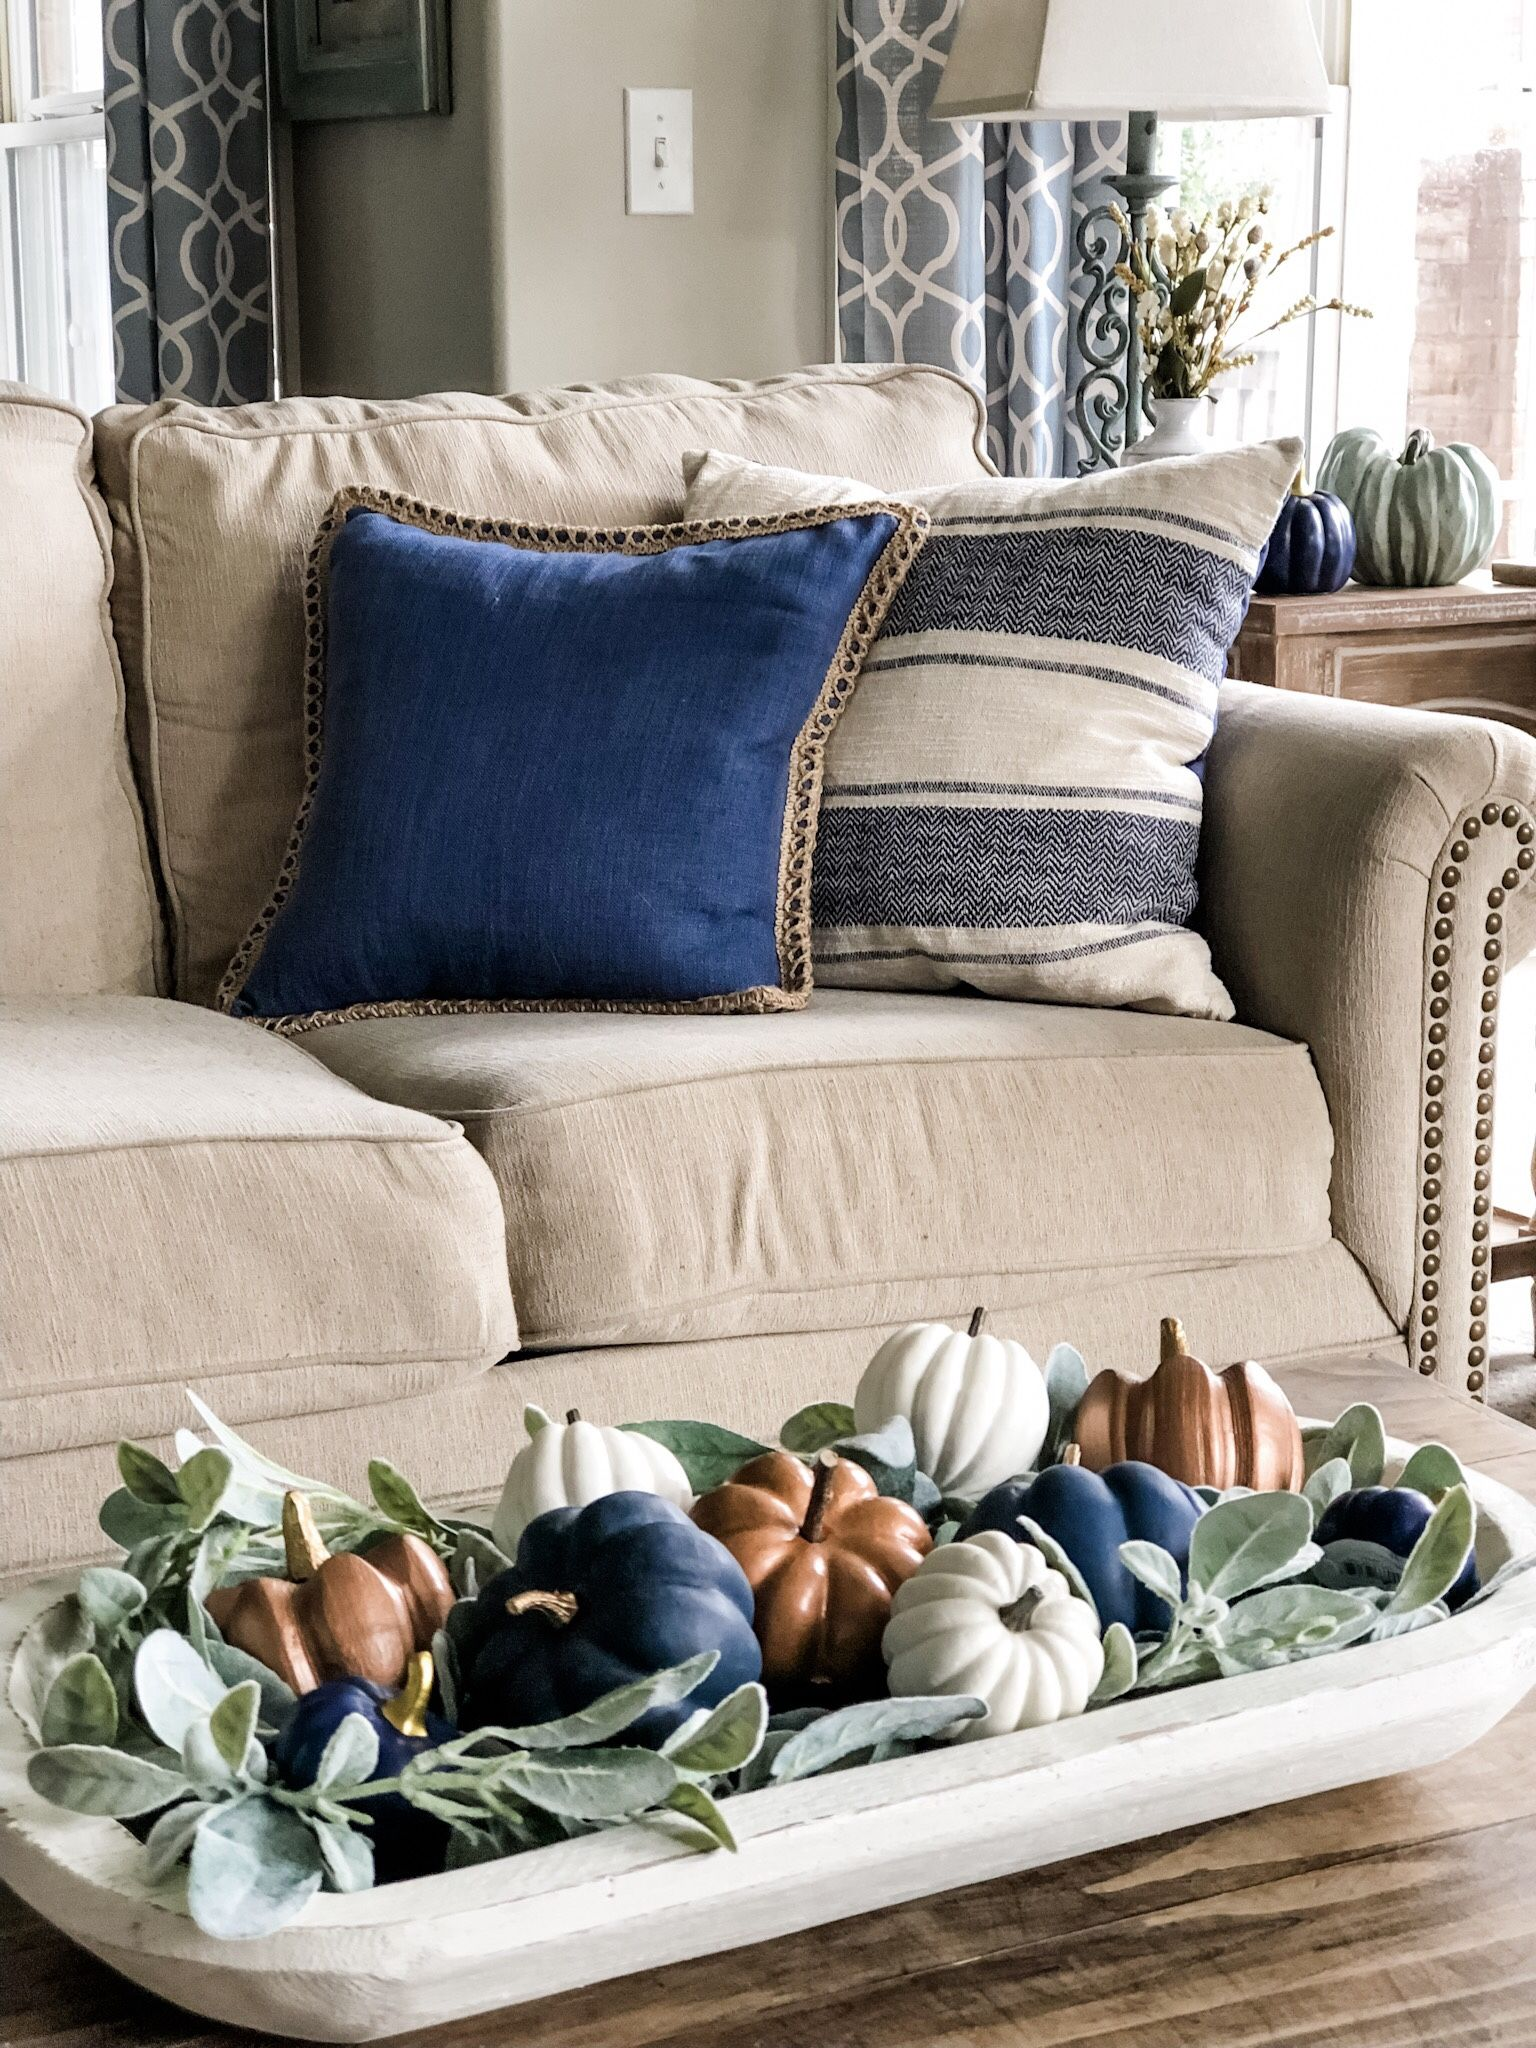 Fall Living Room Ideas Using Navy Copper Sage Green And White Fall Living Room Farm House Living Room Living Room Collections #sage #green #couch #living #room #ideas